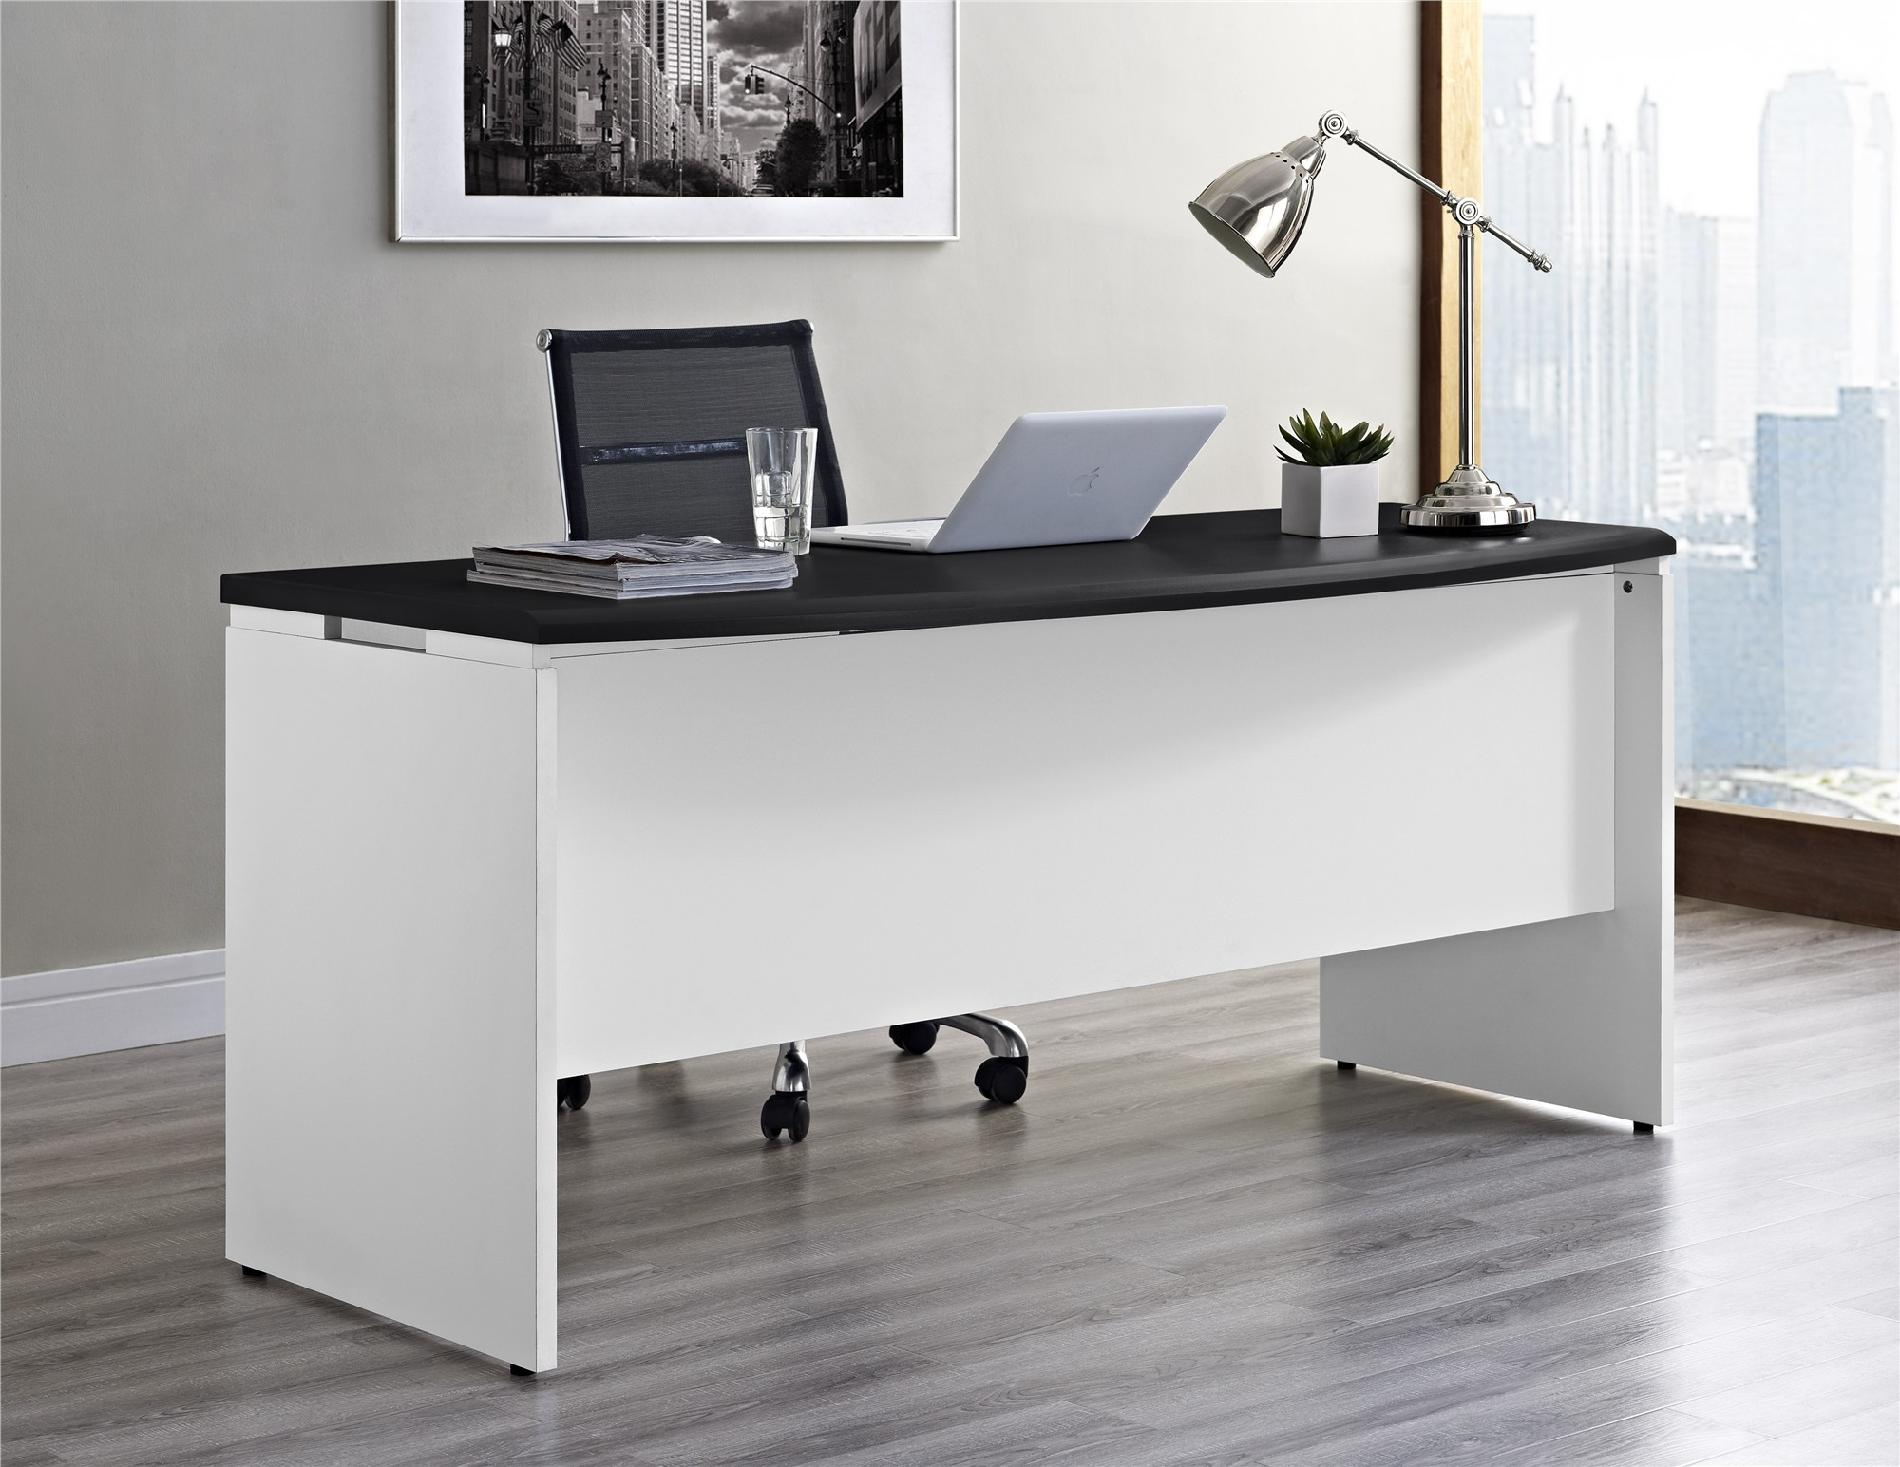 Altra Dorel Home Furnishings Pursuit White and Gray Executive Office Desk